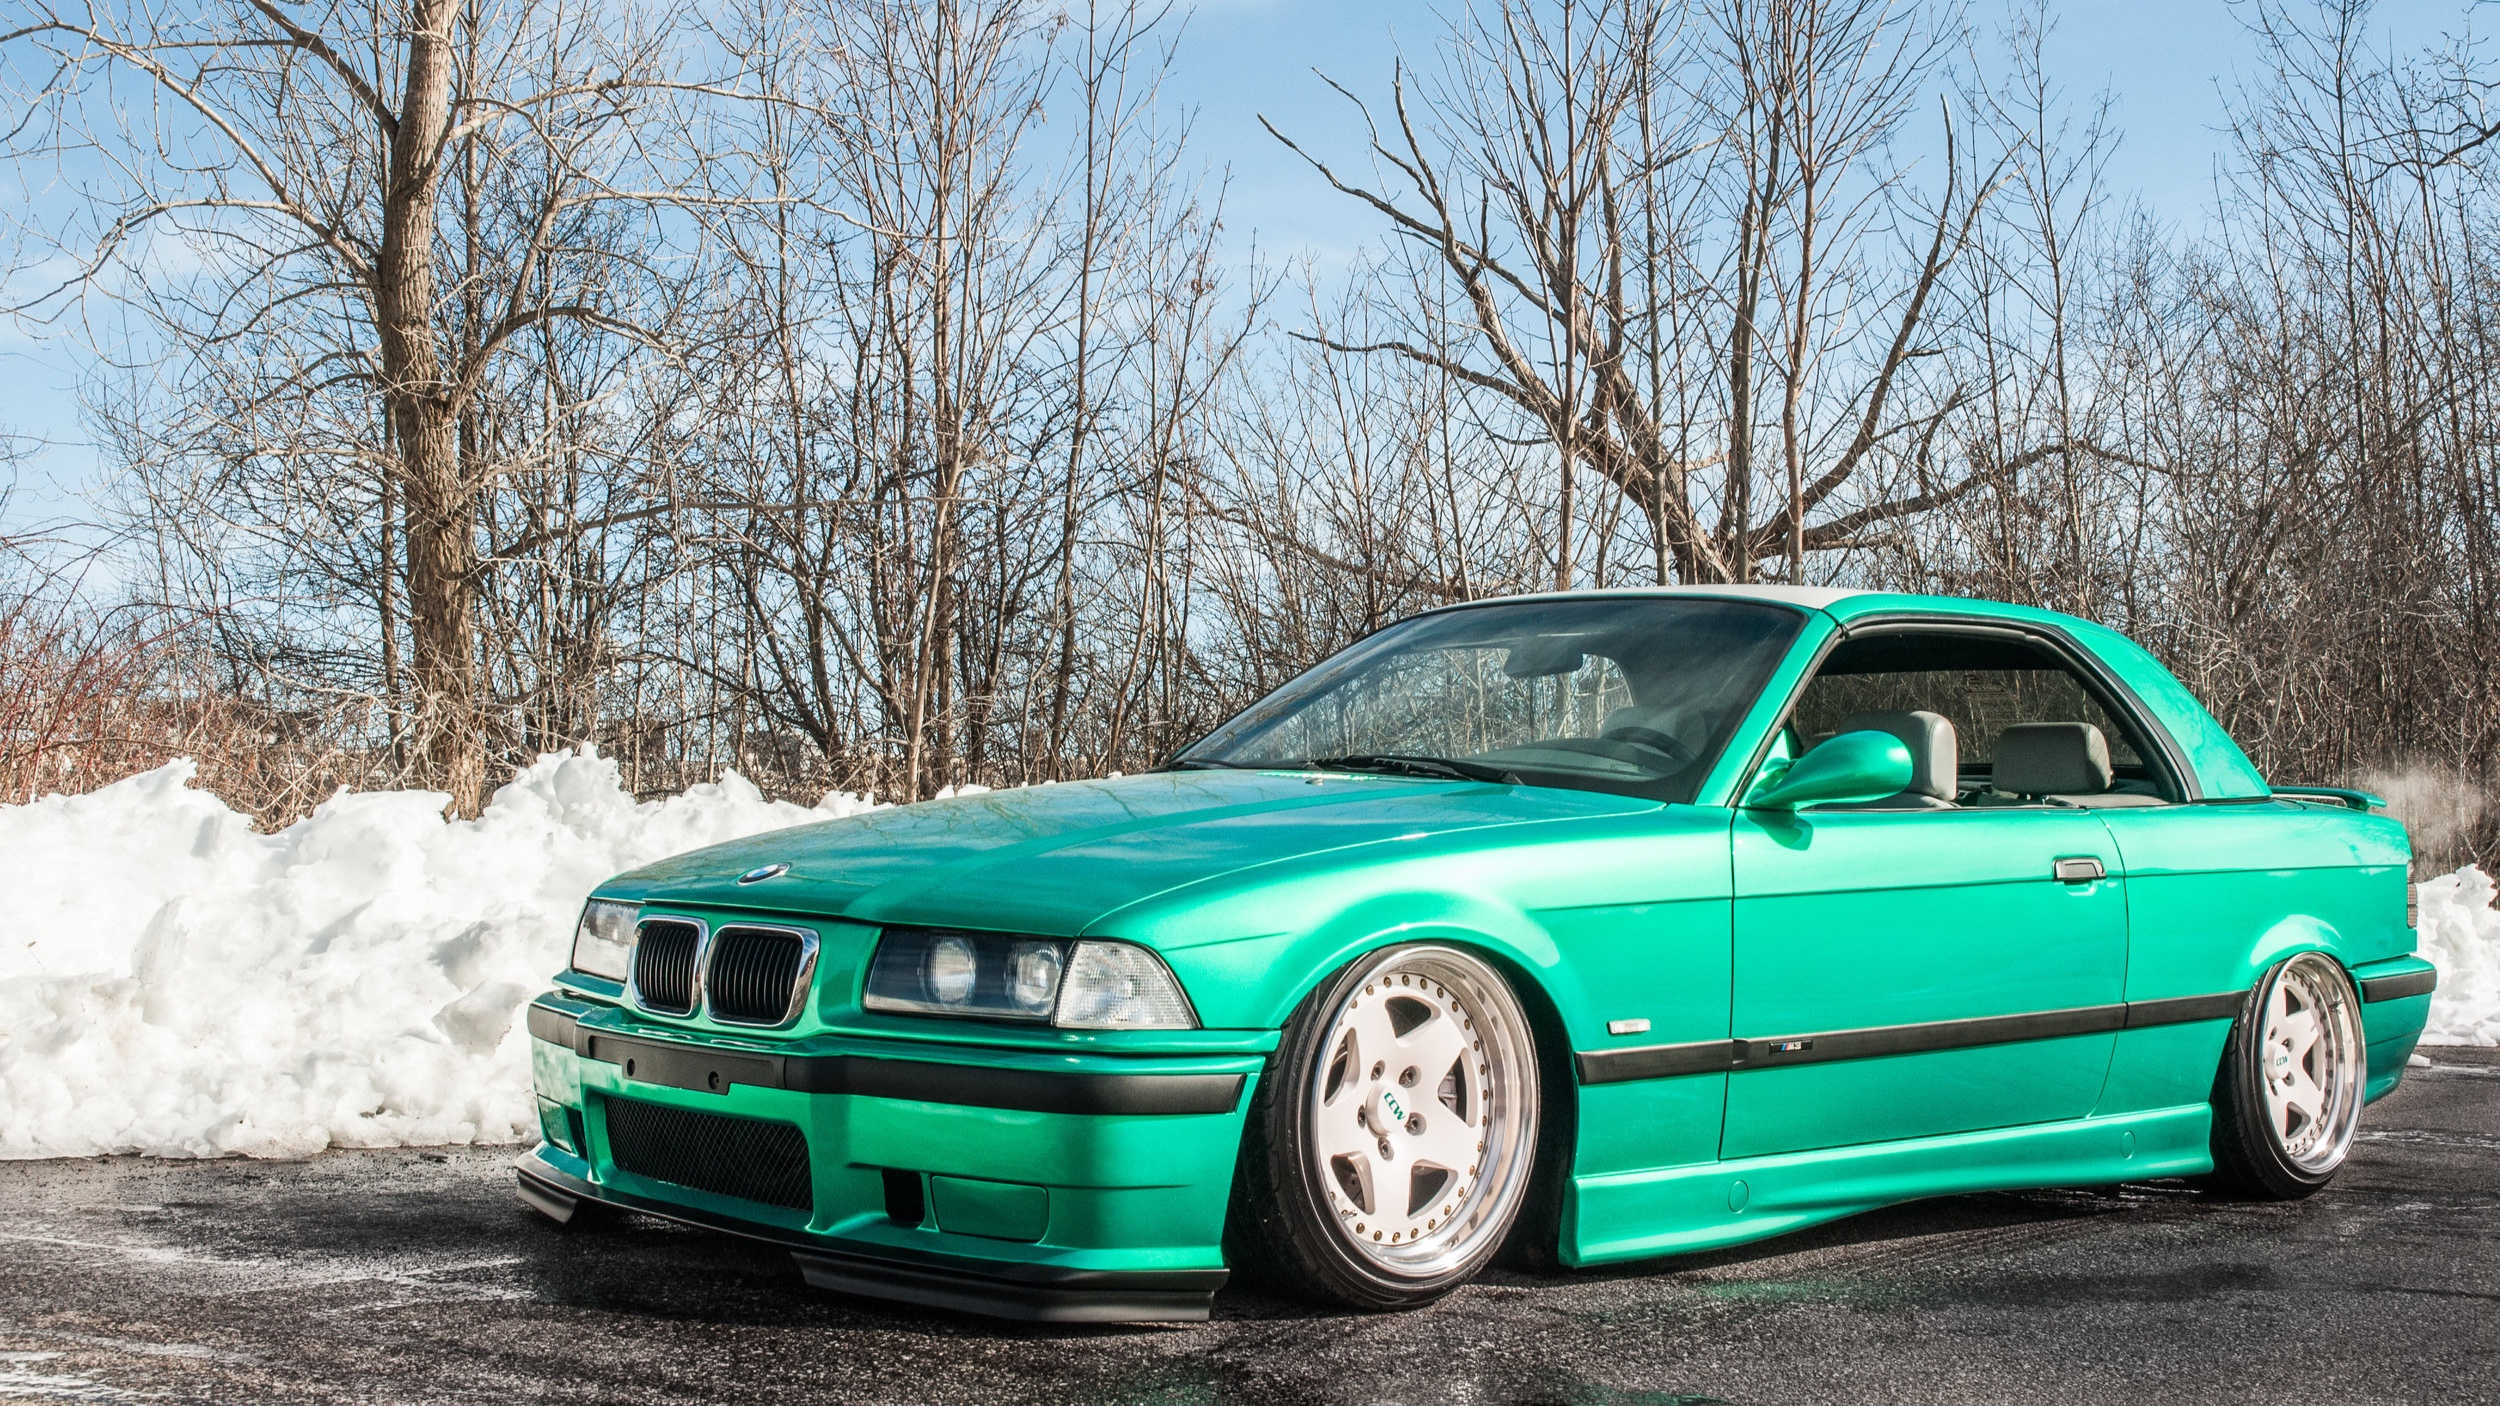 Supercharged and Bagged E36 BMW M3 - Envious Green, Satin White, 3 Piece CCW wheels Refinished, Ceramic Pro